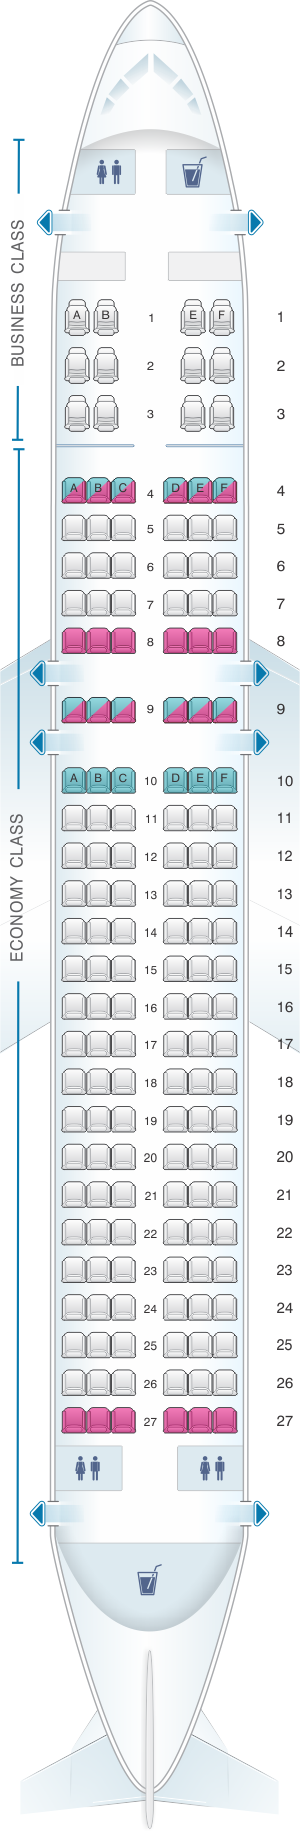 Seat map for Csa Czech Airlines Airbus A320 200